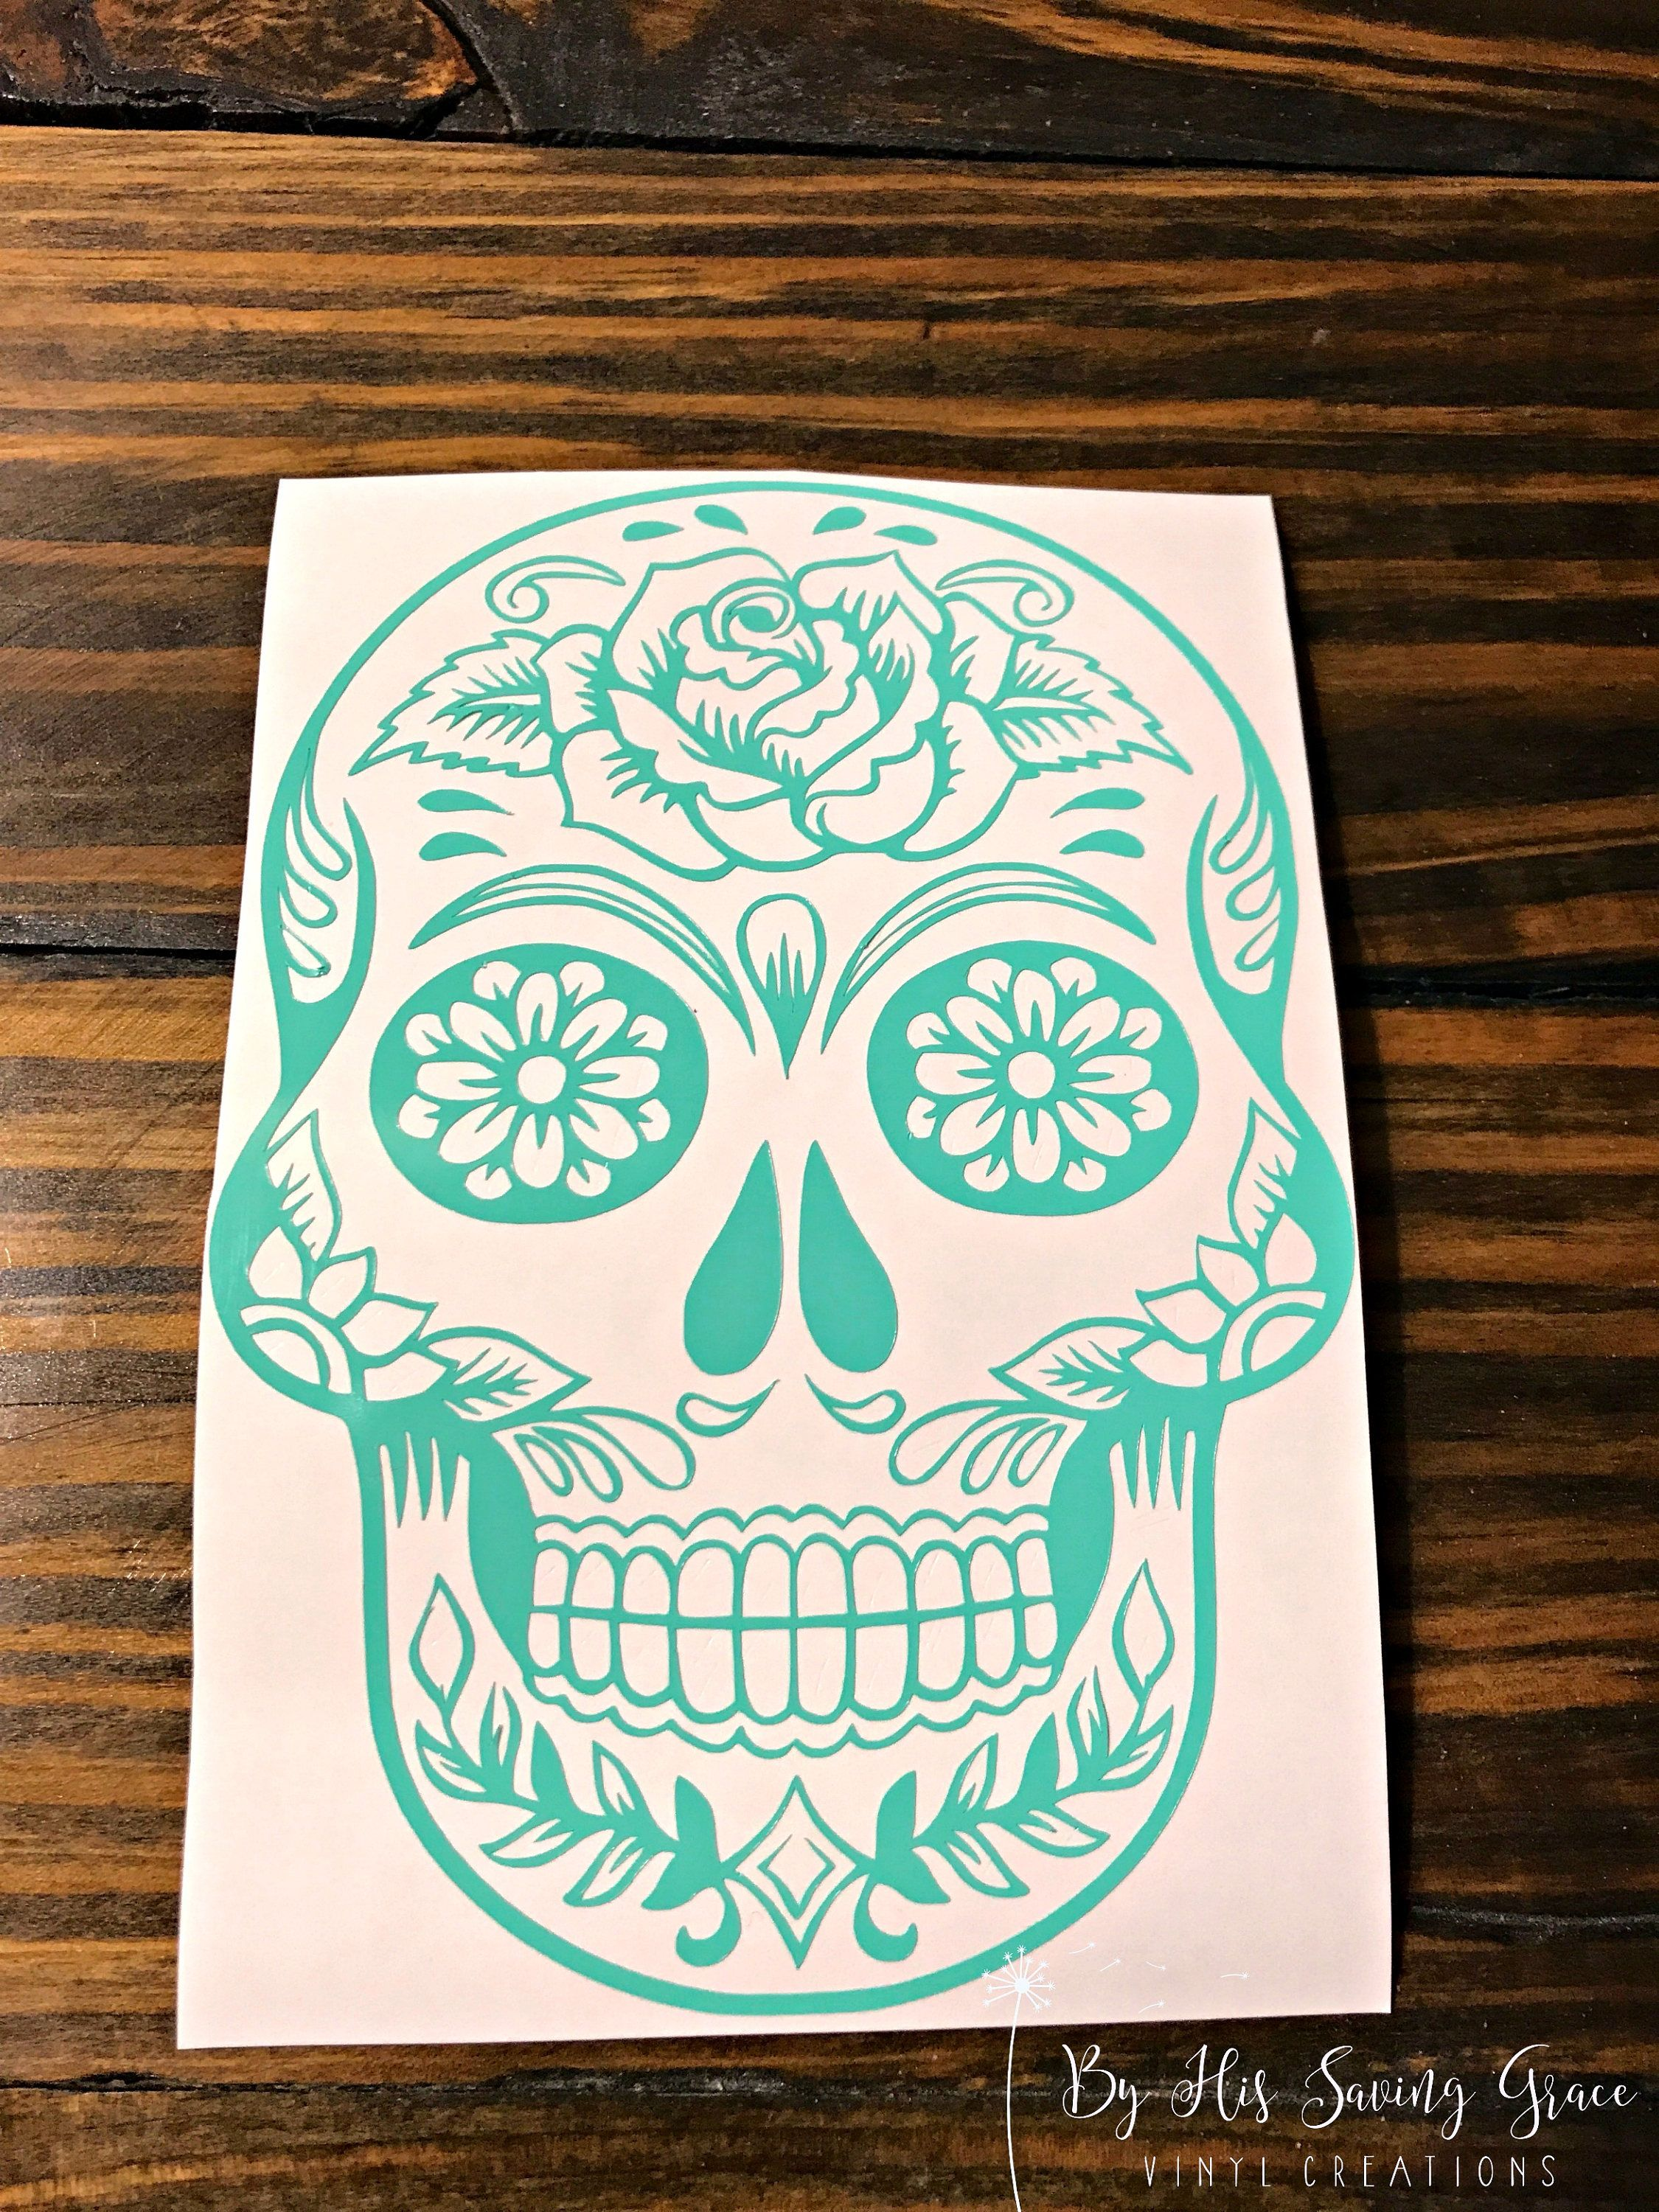 Sugar Skull Cup Decal Decal For Car Ice Chest Decal Etsy Yeti Decals Cup Decal Vinyl Decals [ 3000 x 2250 Pixel ]